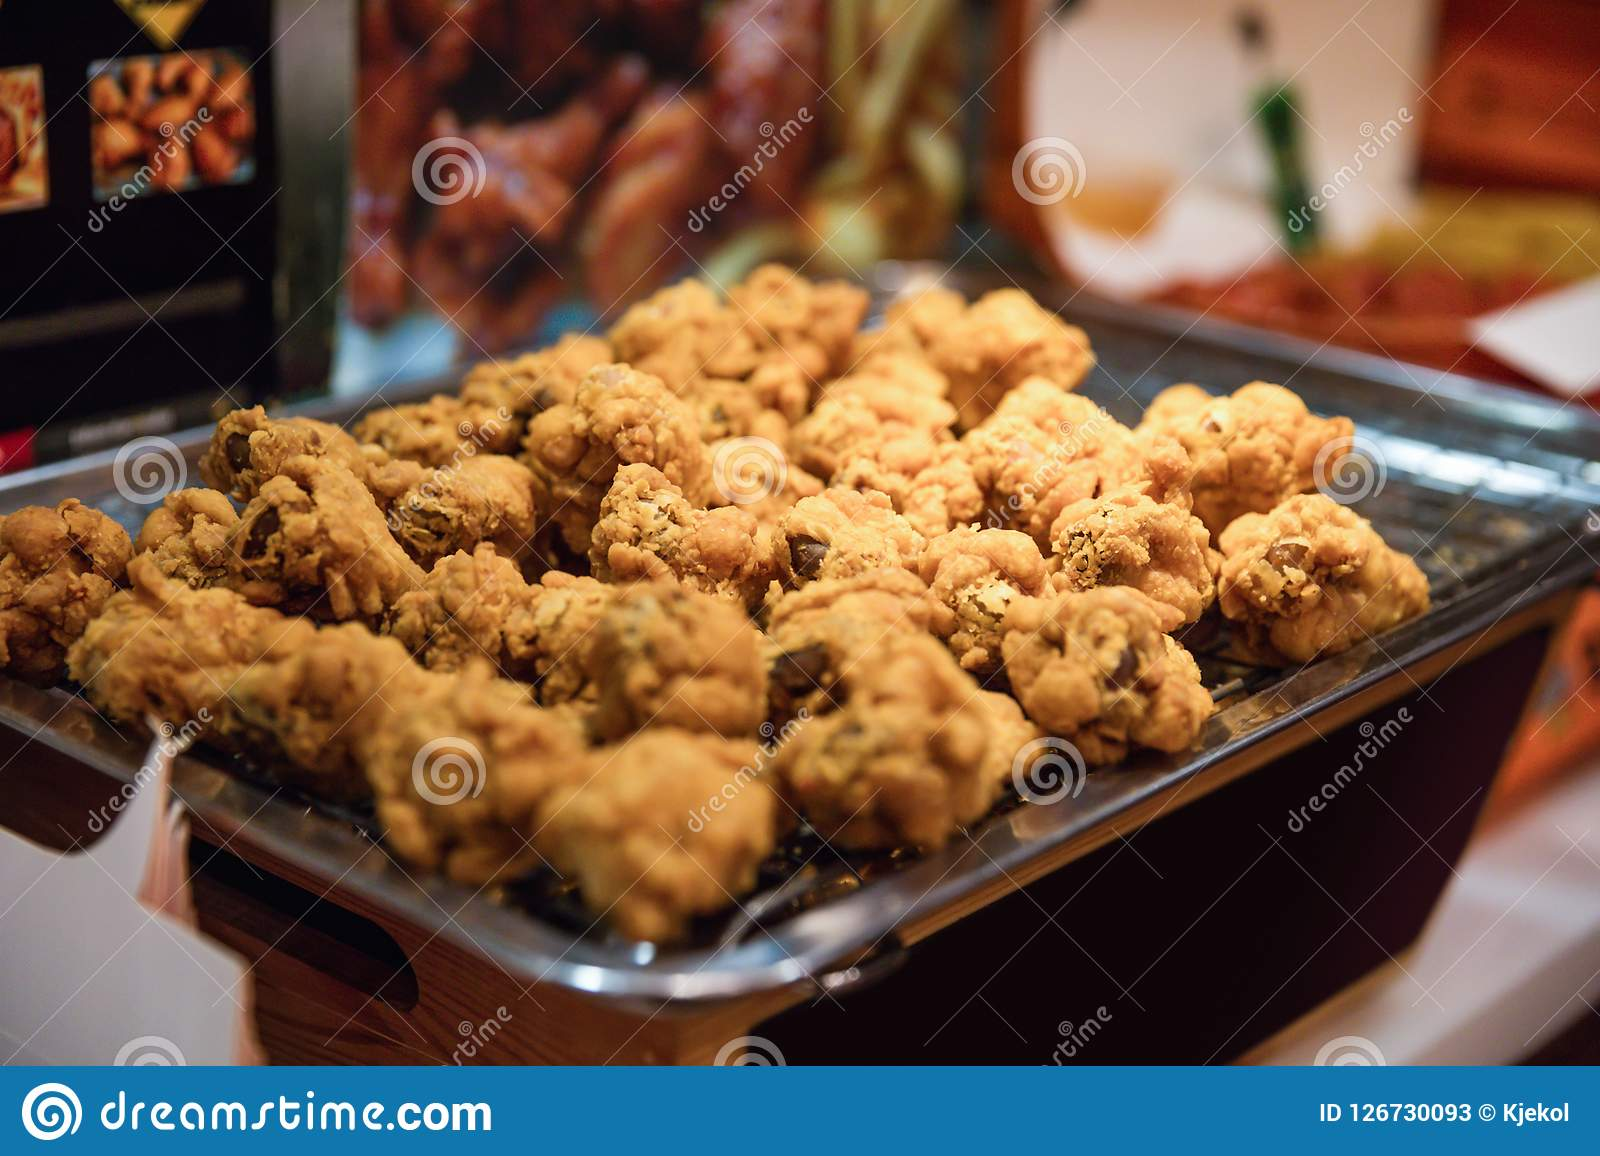 Fried Chickens At Street Market Stall i Asien